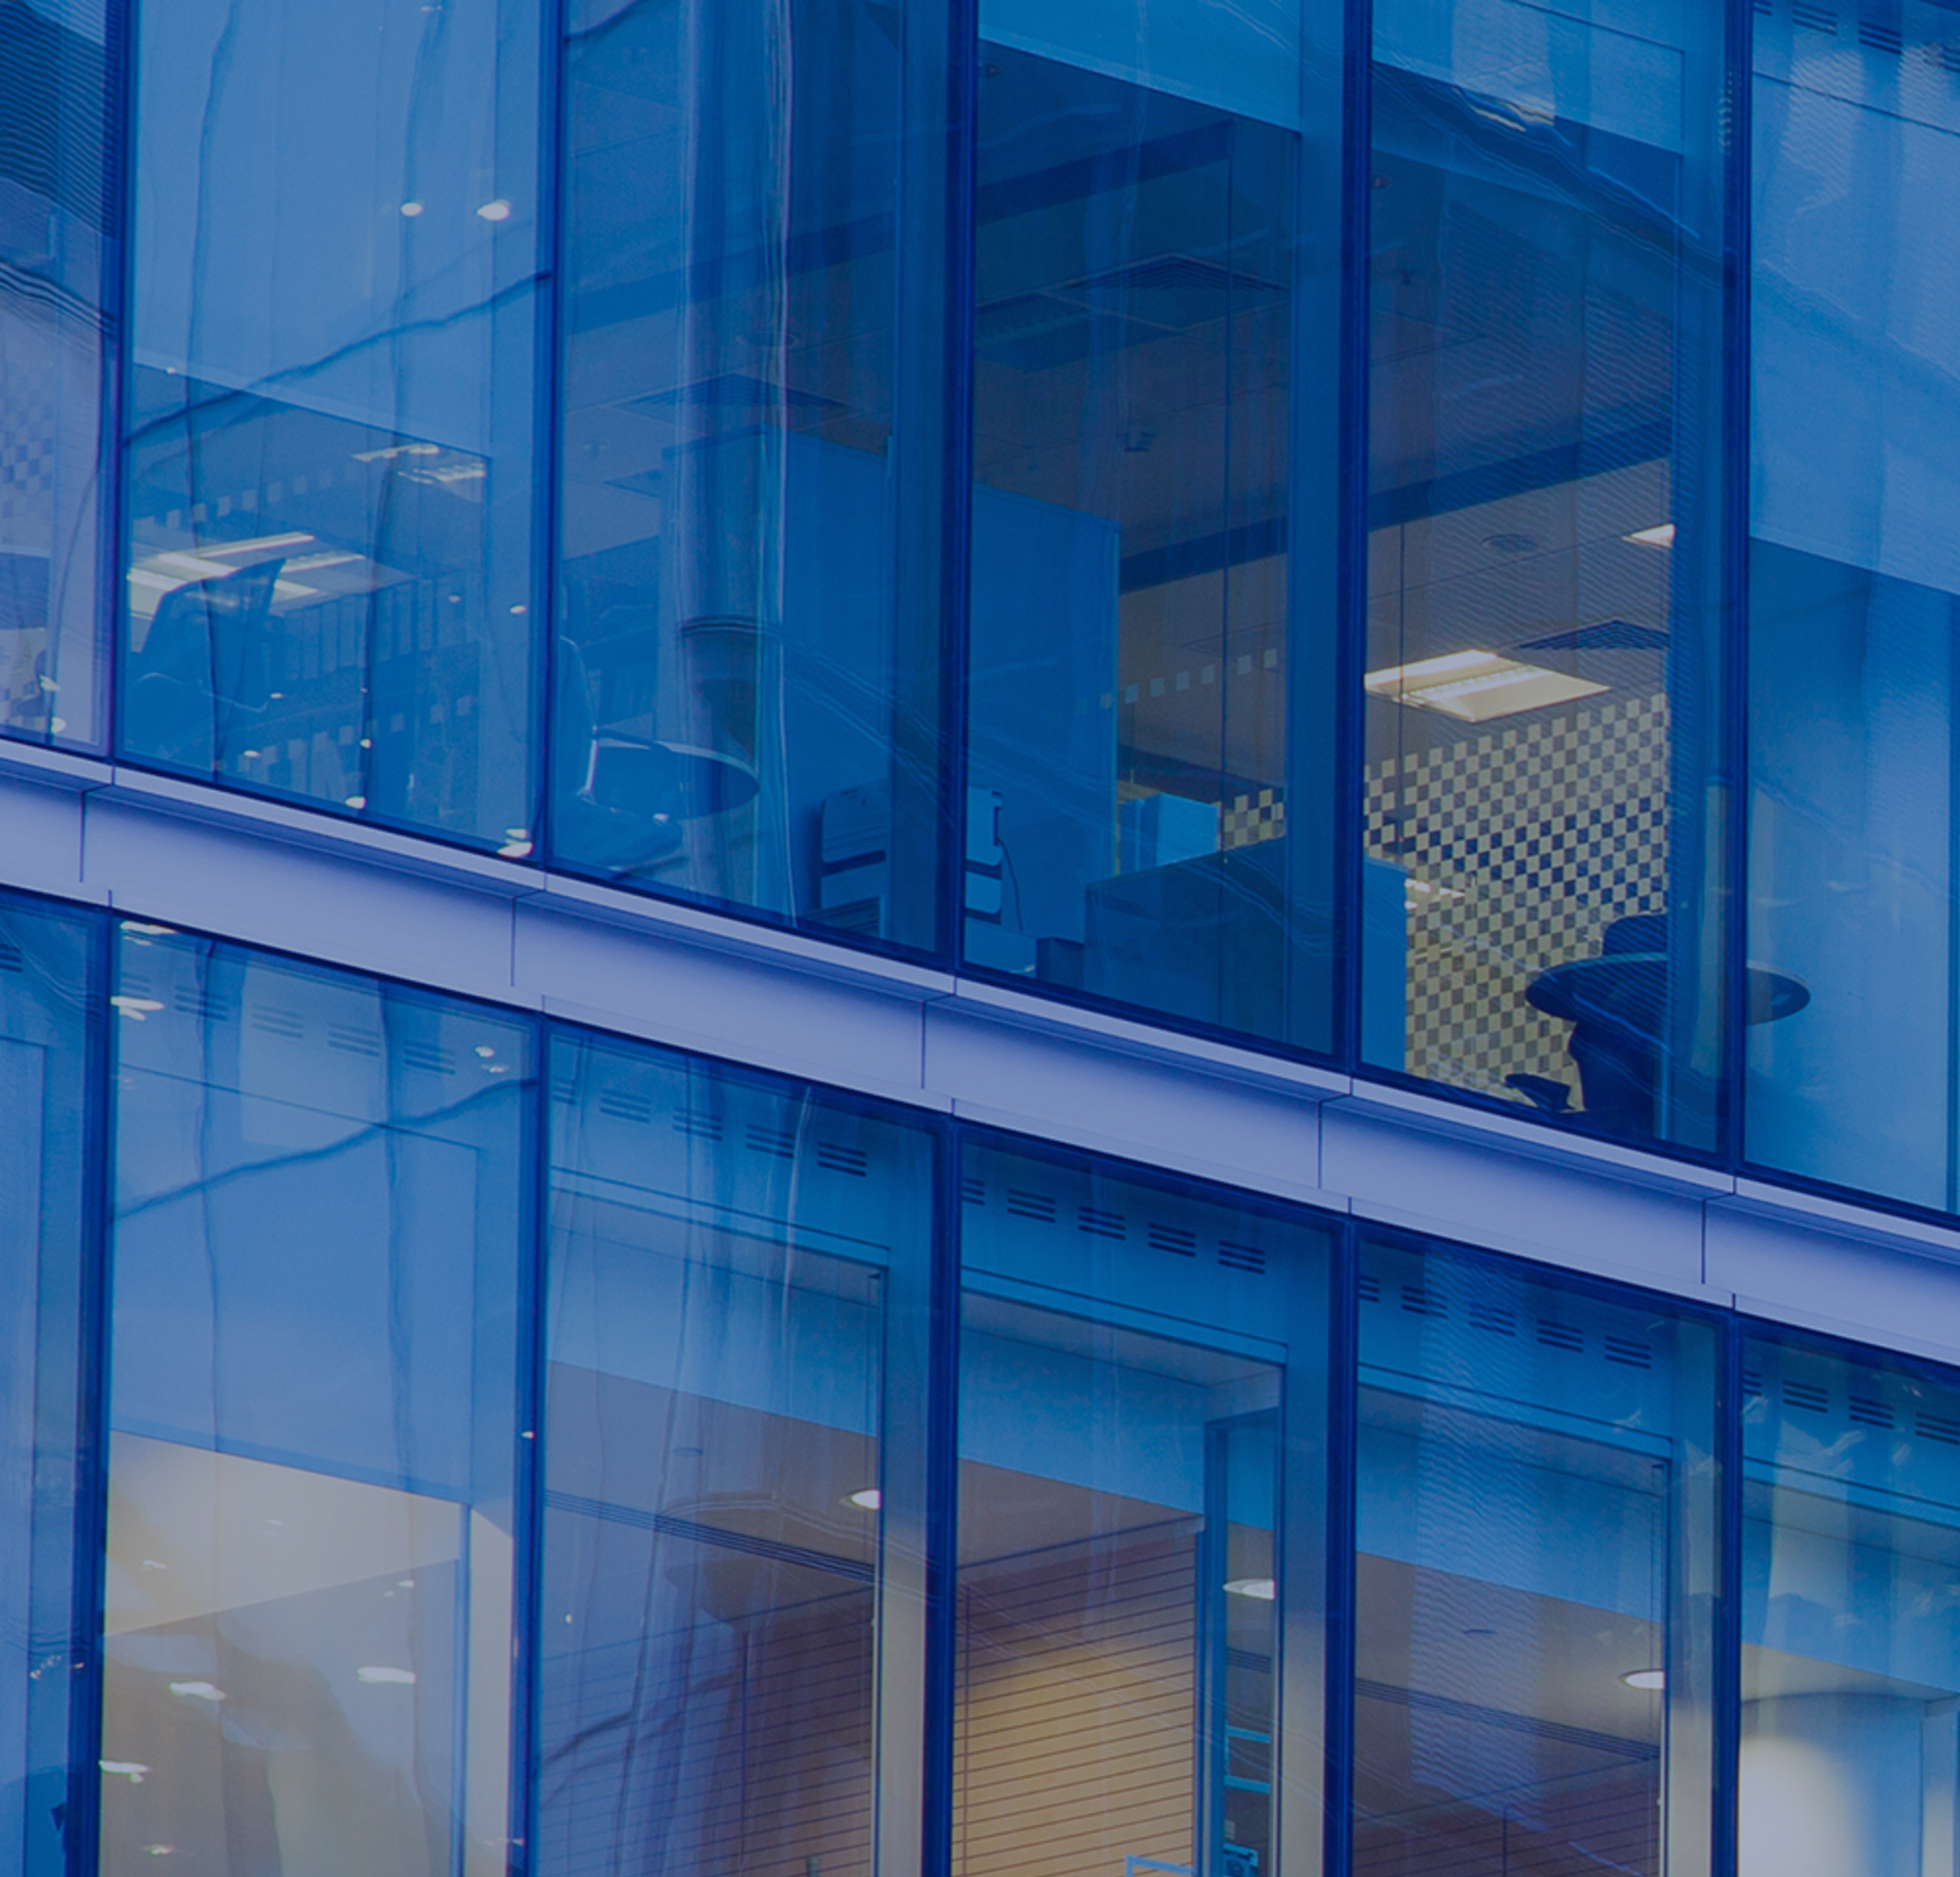 A tall glass office building with views into employees' work stations.